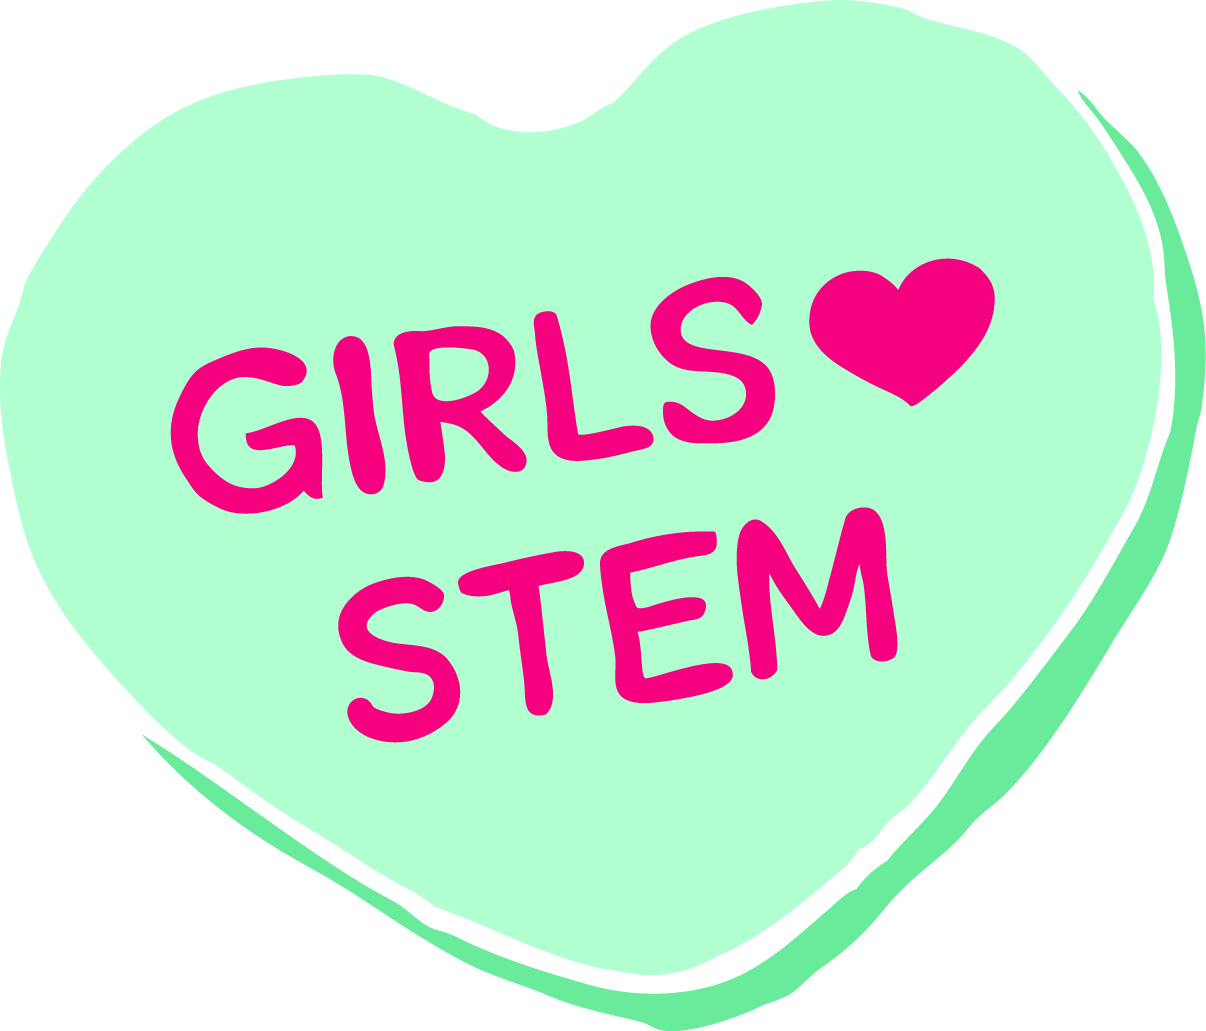 Stem School Meaning: Girl Scout Blog